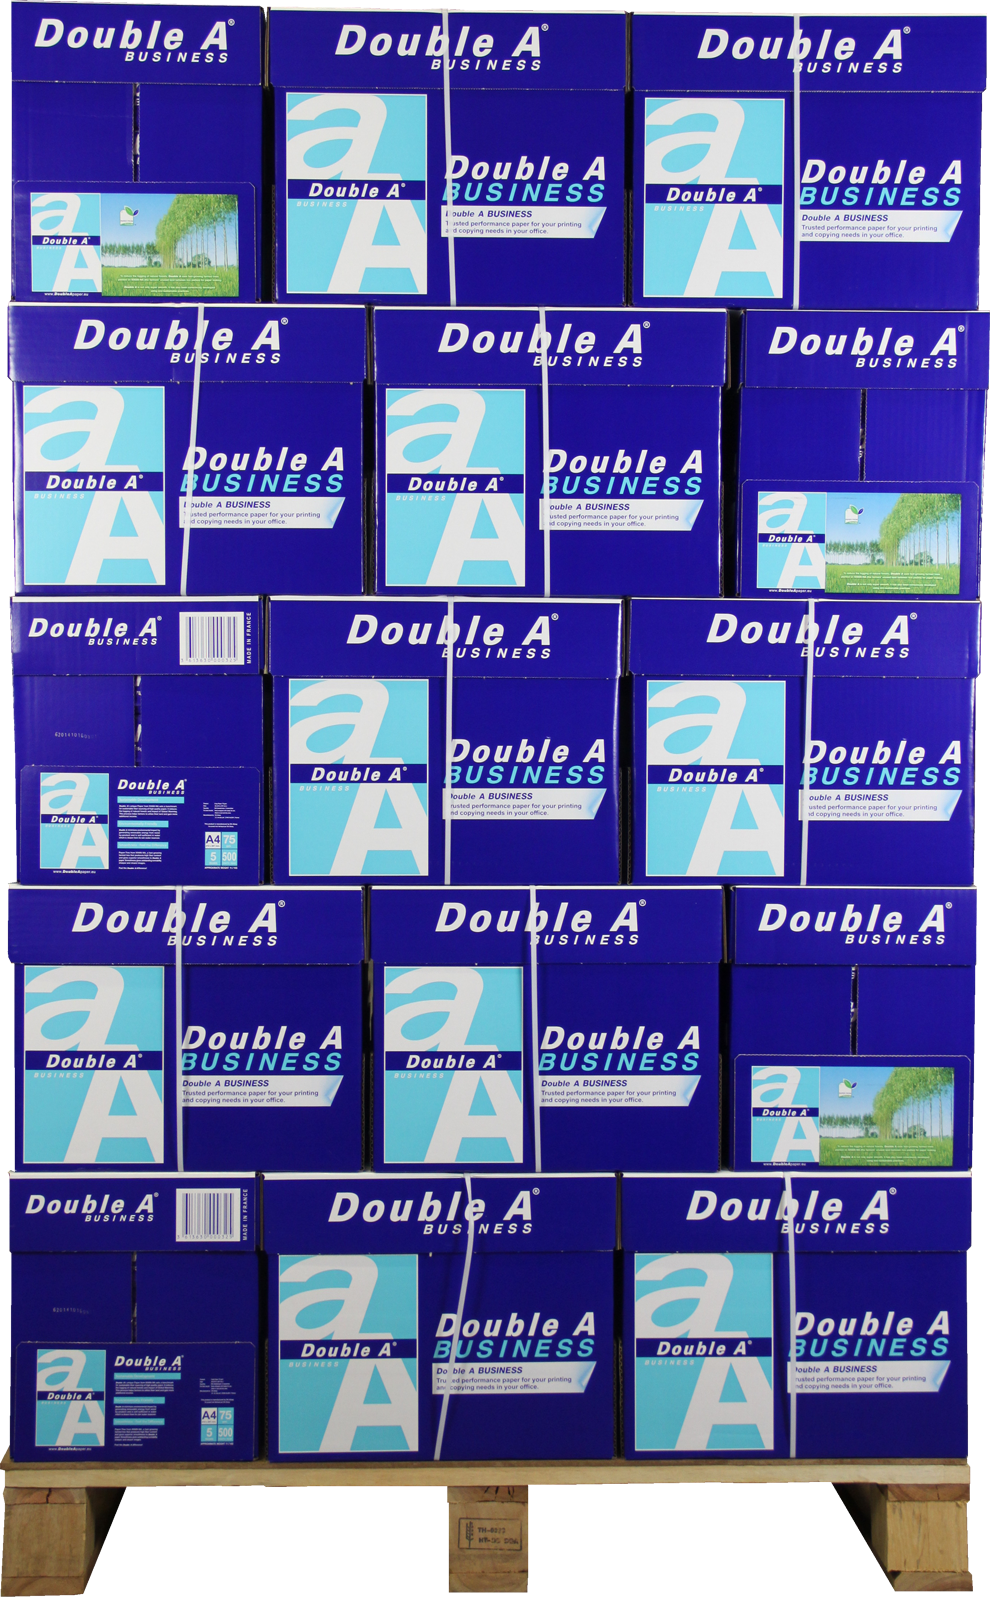 Double A Business A4 Papier 200 pakken (75 grams) wit